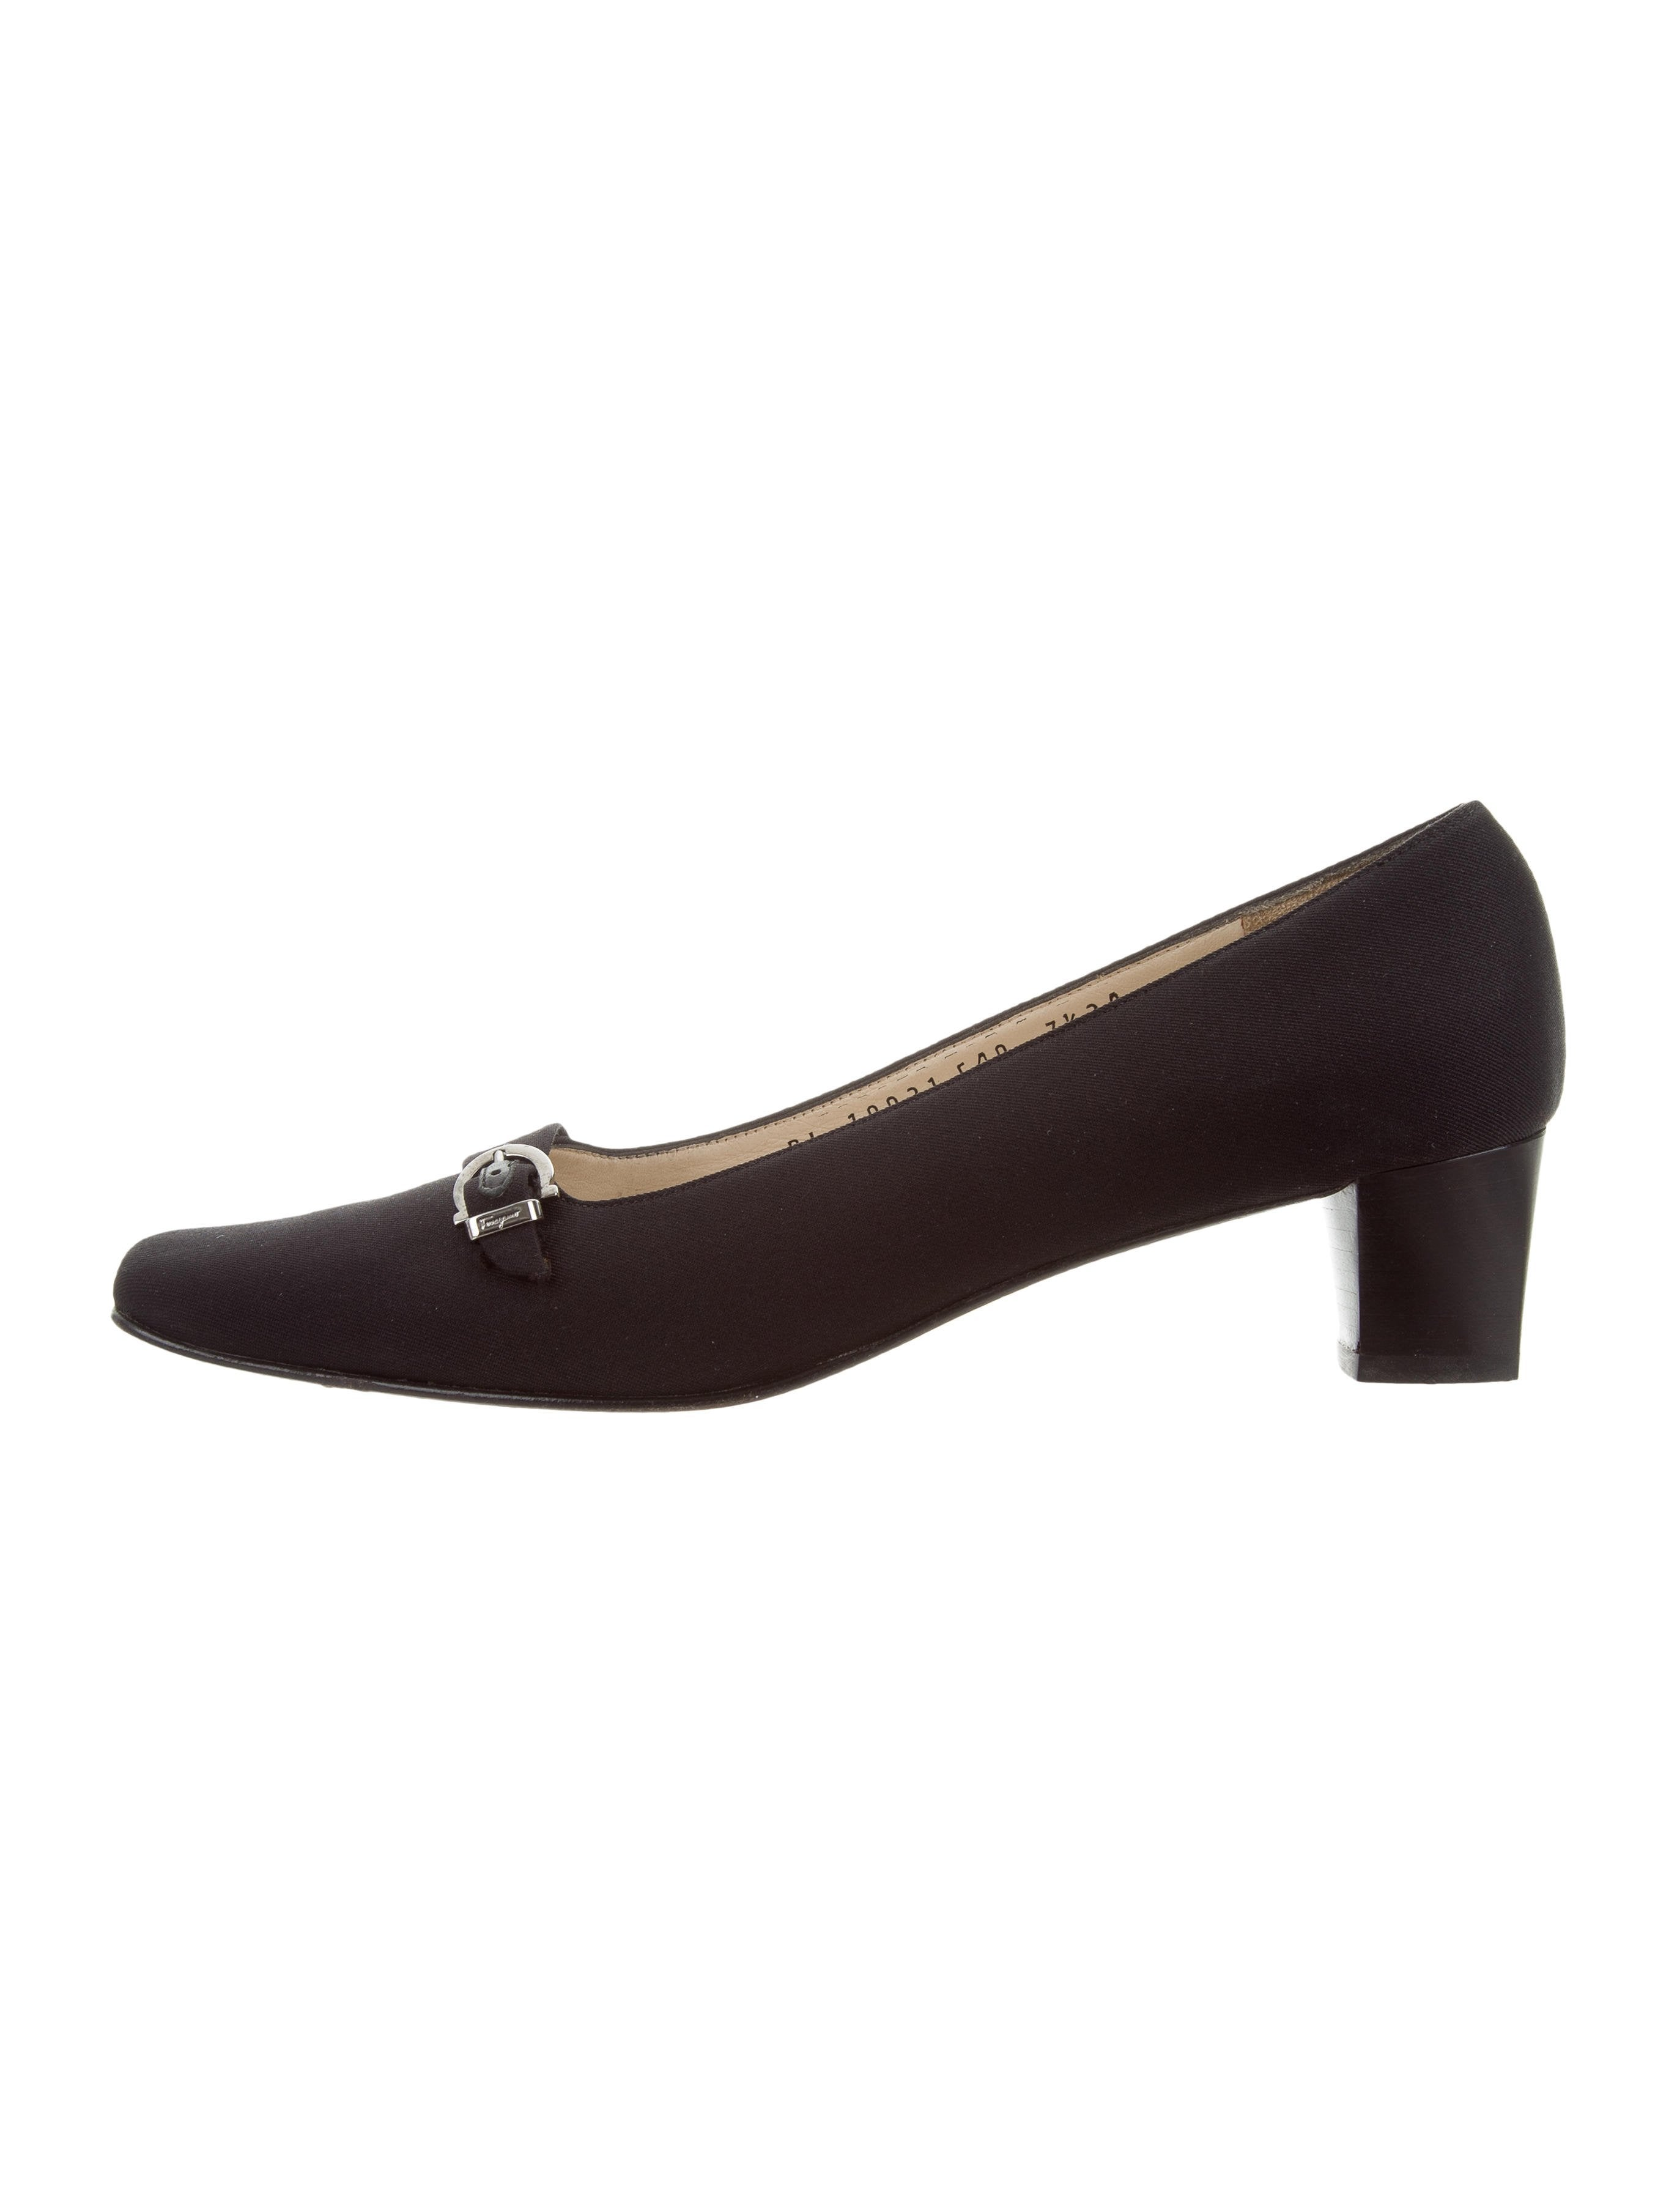 clearance wide range of Salvatore Ferragamo Woven Square-Toe Flats sale get to buy cheap enjoy outlet get to buy mfdDifl